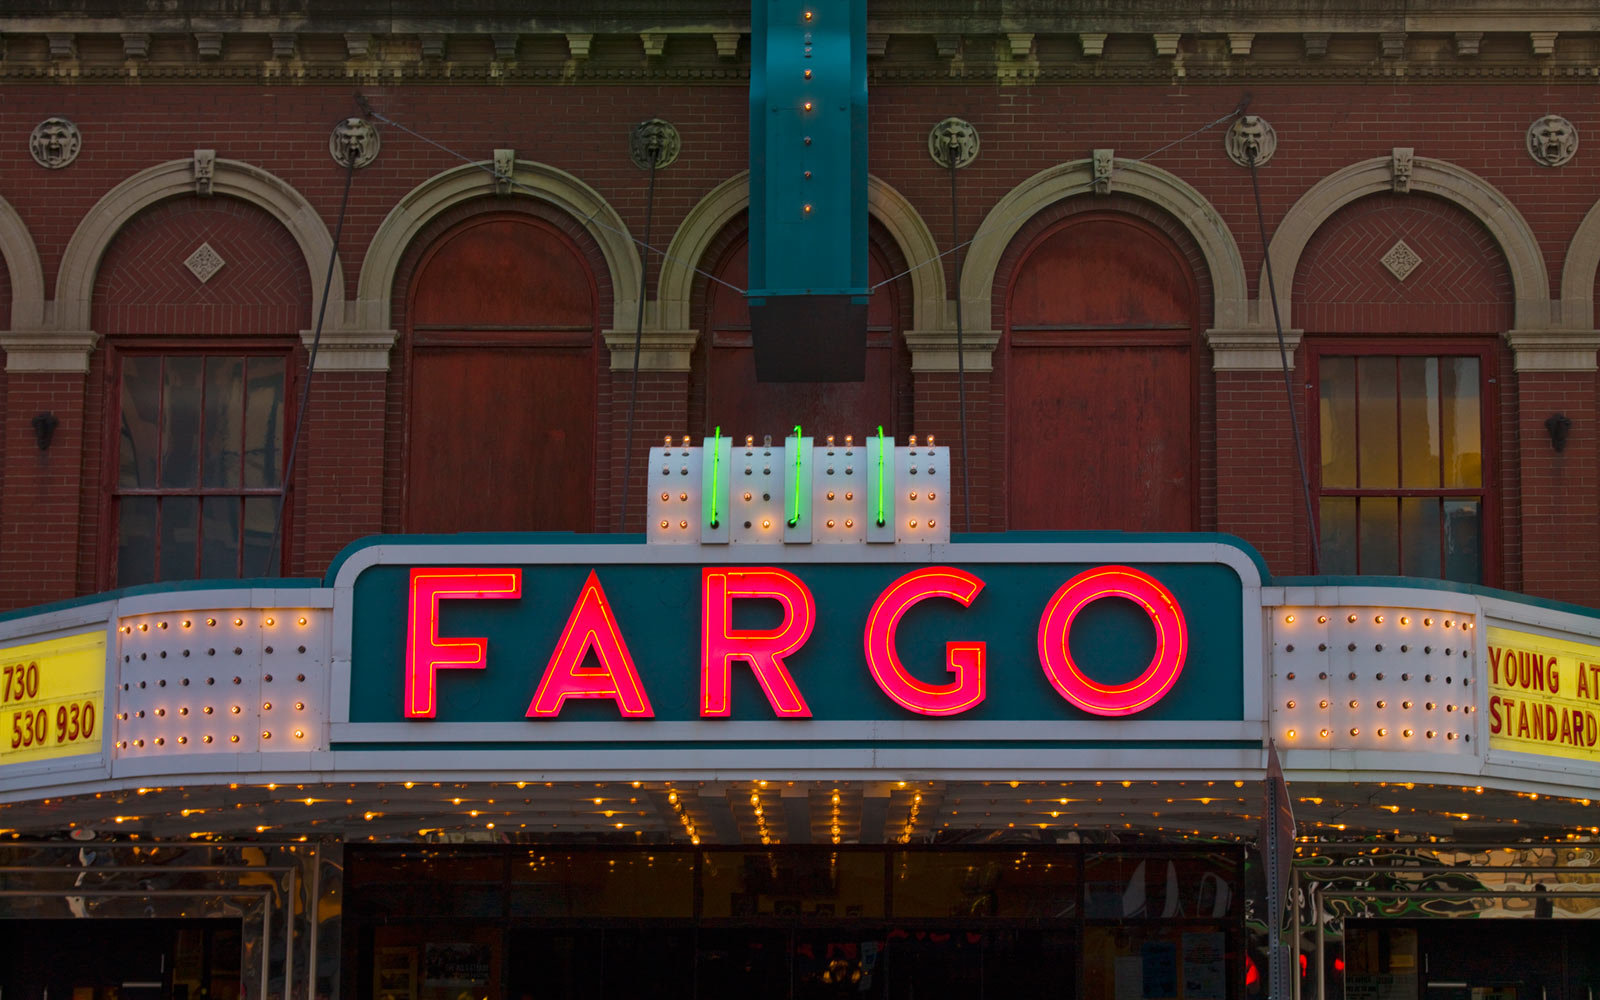 Catch an Art House Flick at the Fargo Theatre: Fargo, ND